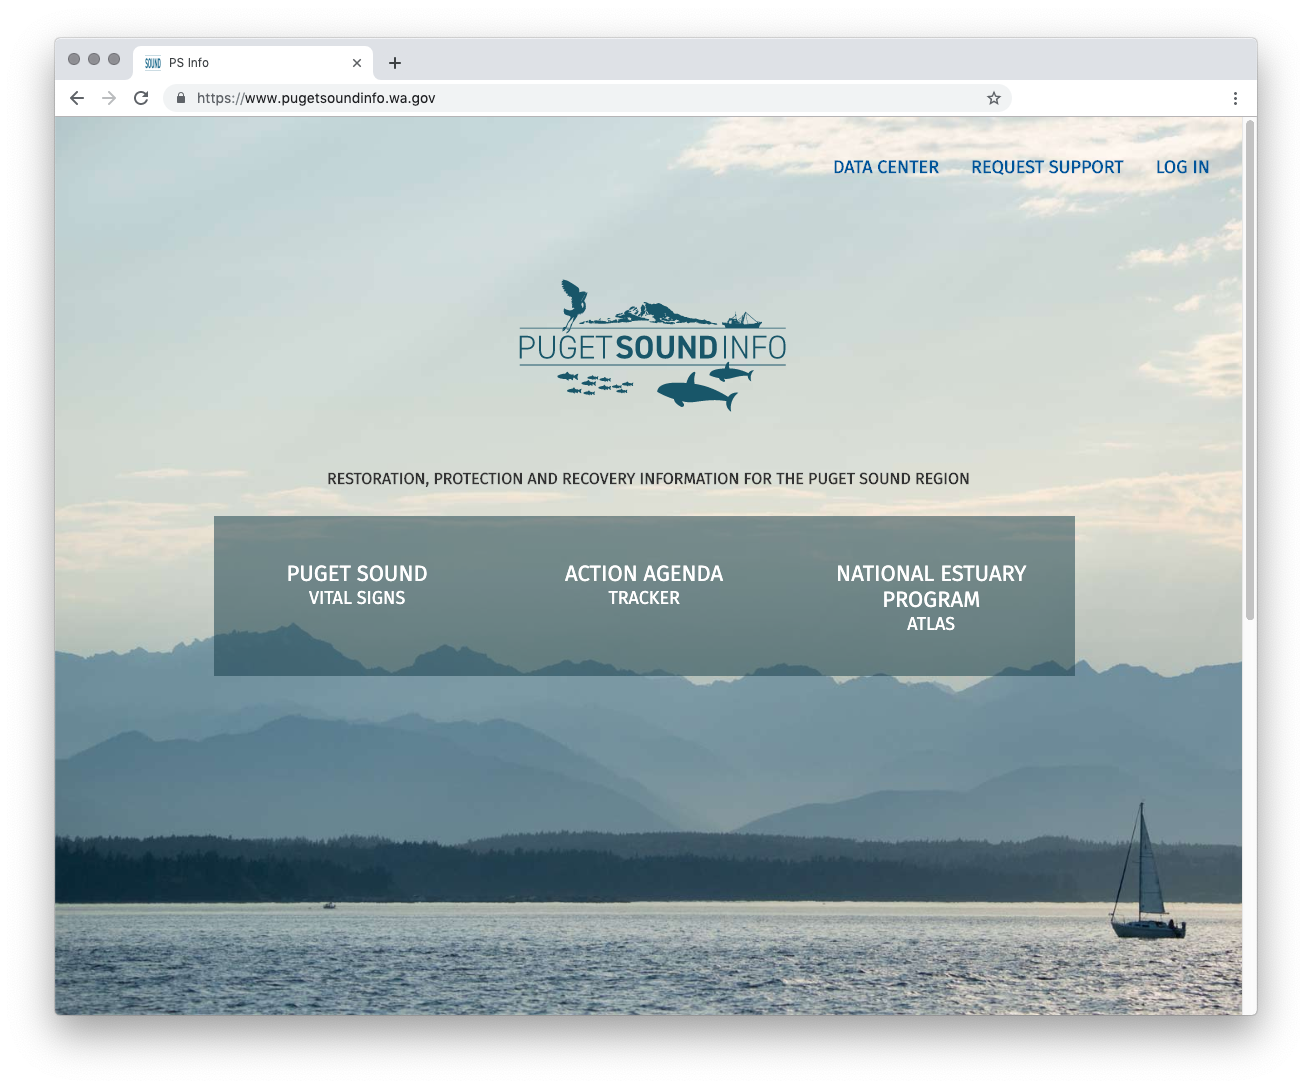 Puget Sound Info Home Page